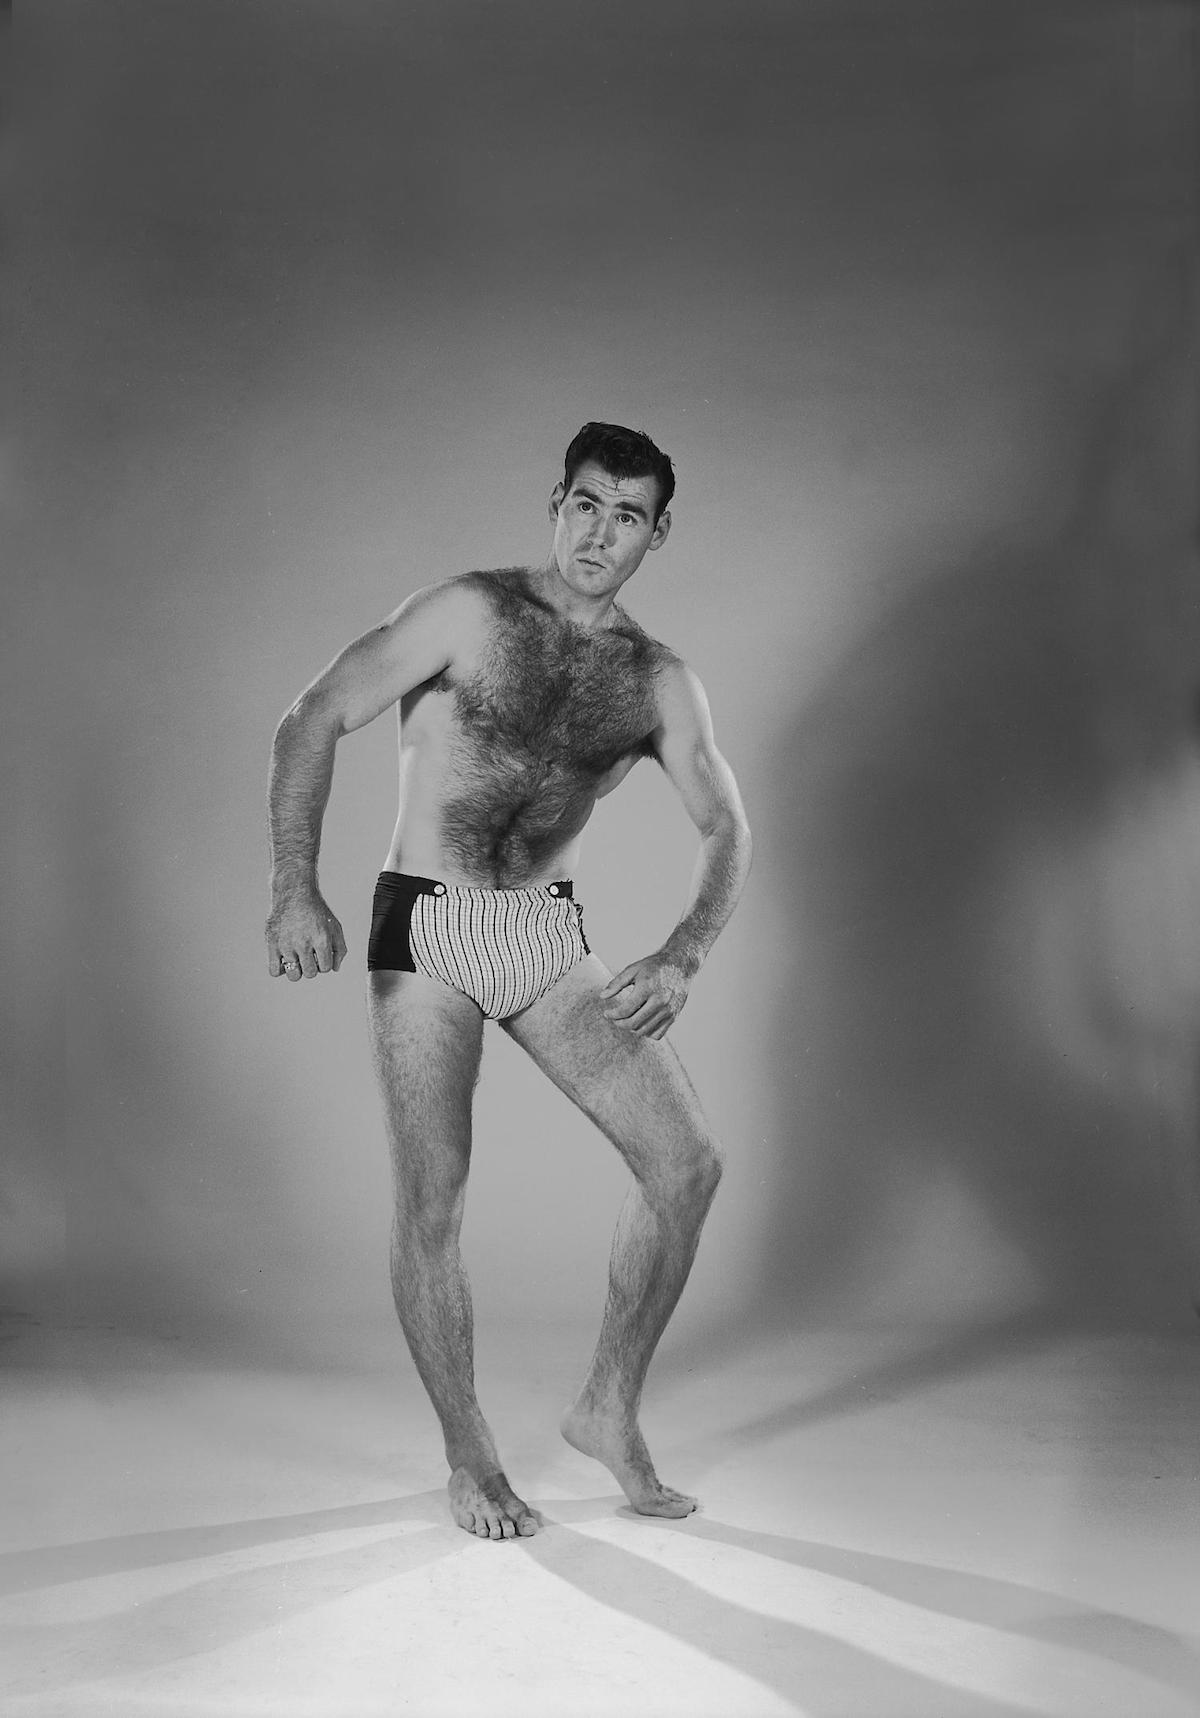 Photograph of a man named Charlie Bigley posing in shorts for a portrait. CREATOR: Williams, Byrd M. (Byrd Moore), III